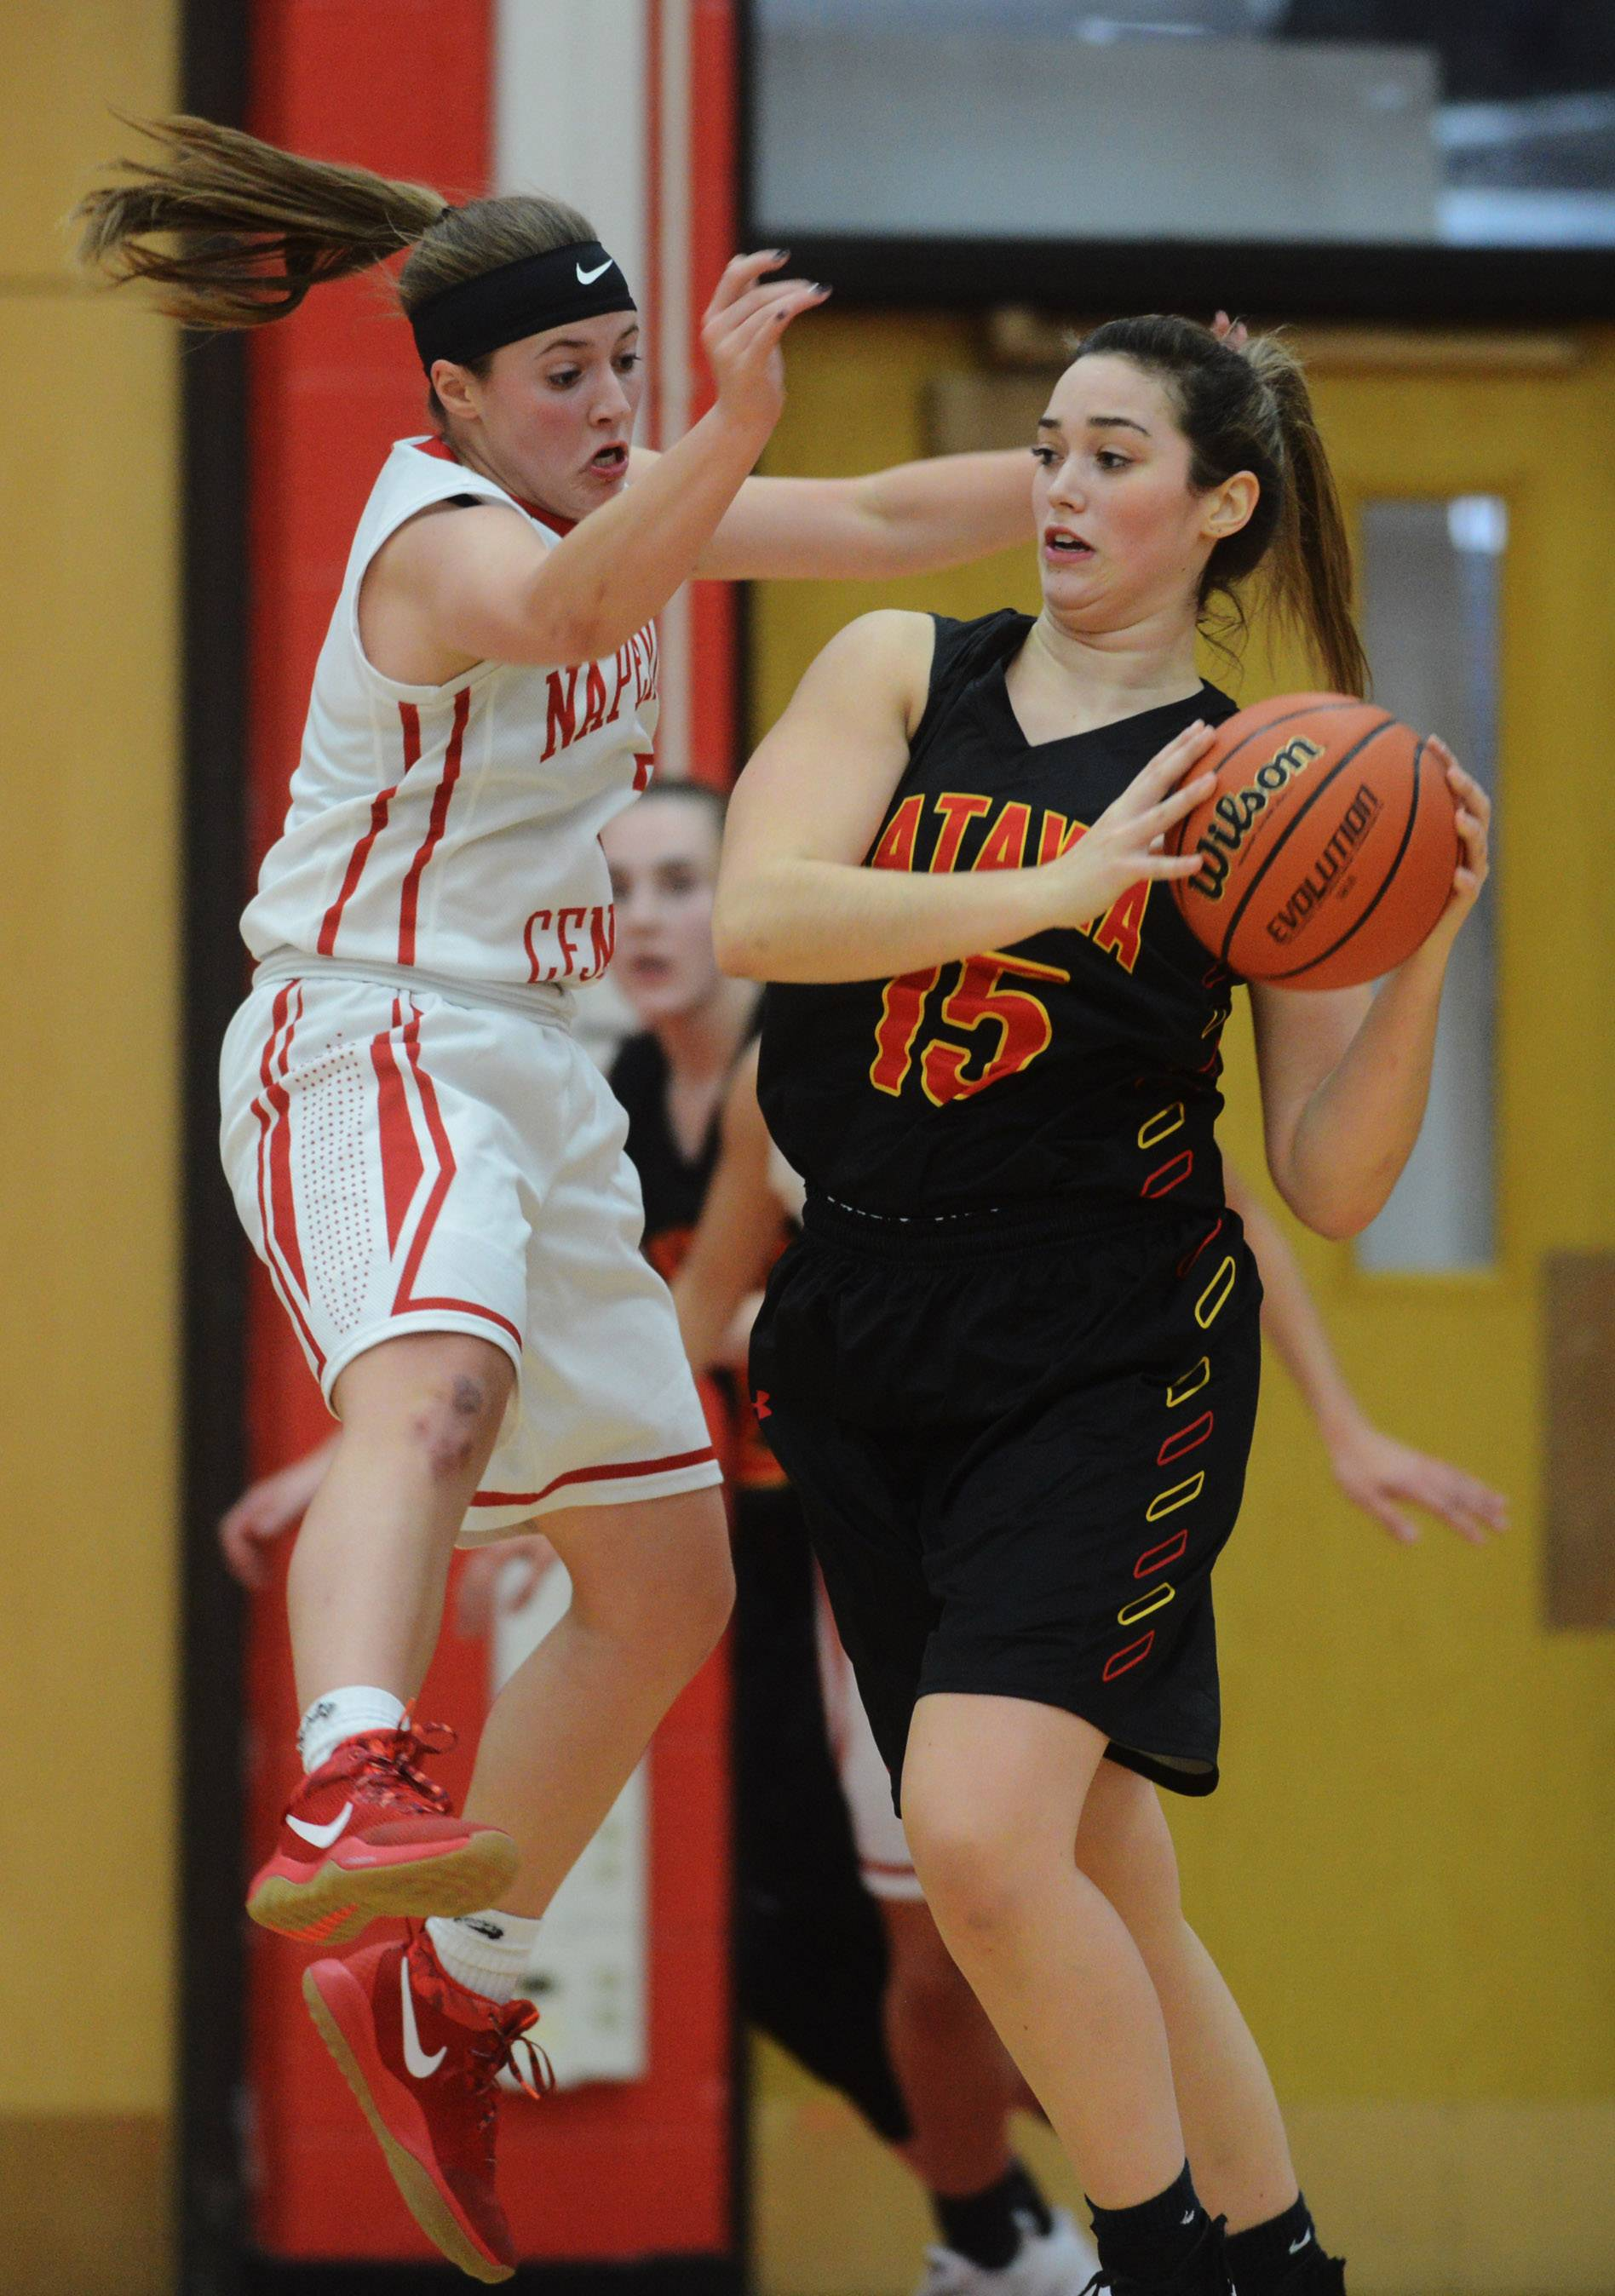 Naperville Central's Gabi Melby, left, closely guards Batavia's Ava Sergio during Friday's game in Naperville.